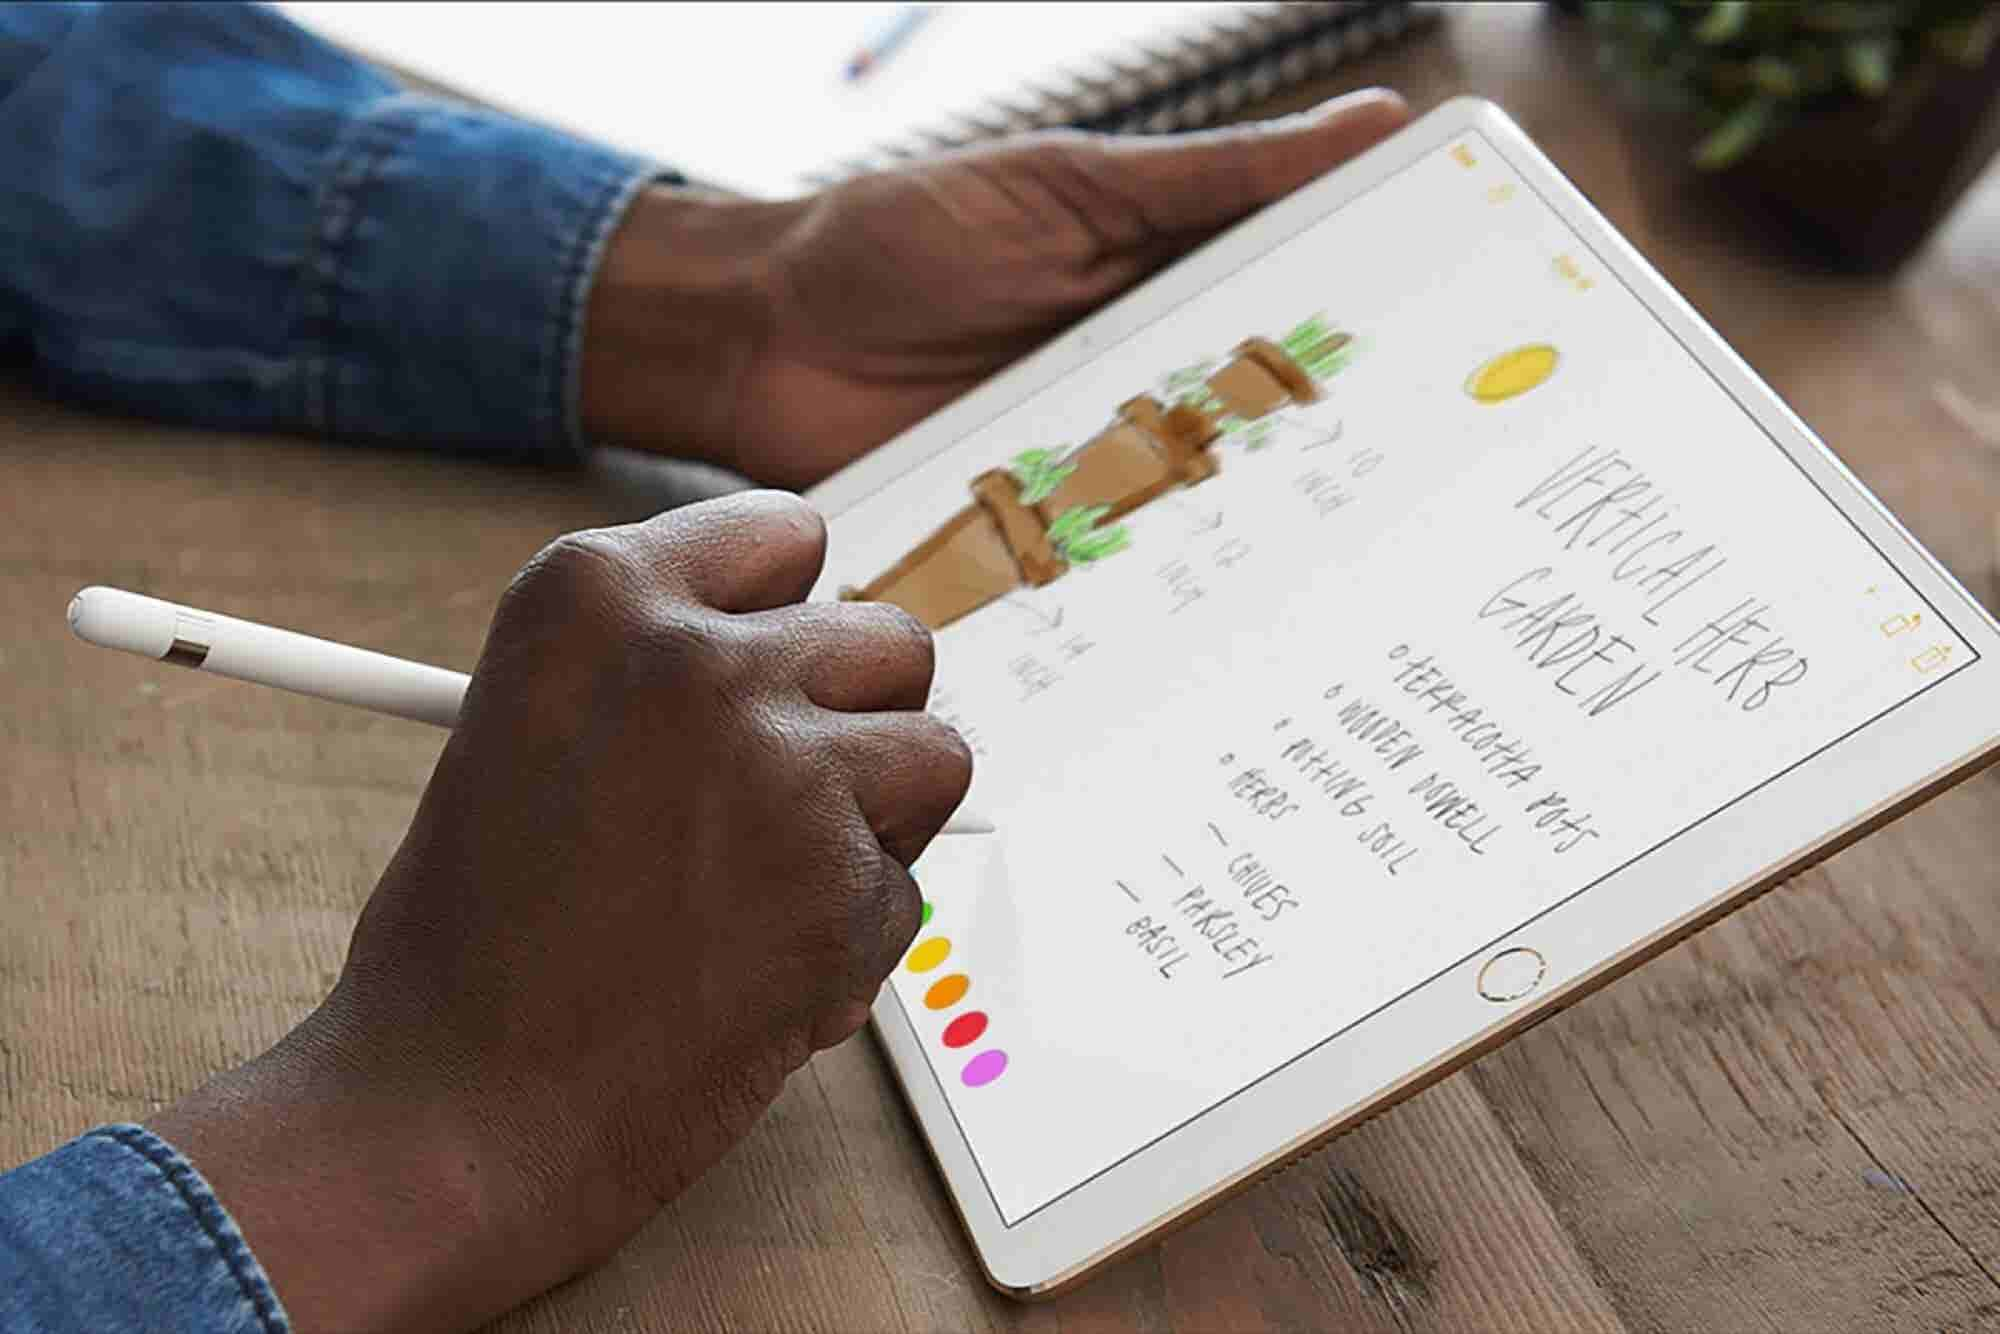 iPad Pro Gets a Bigger Screen, But Comes at a High Price